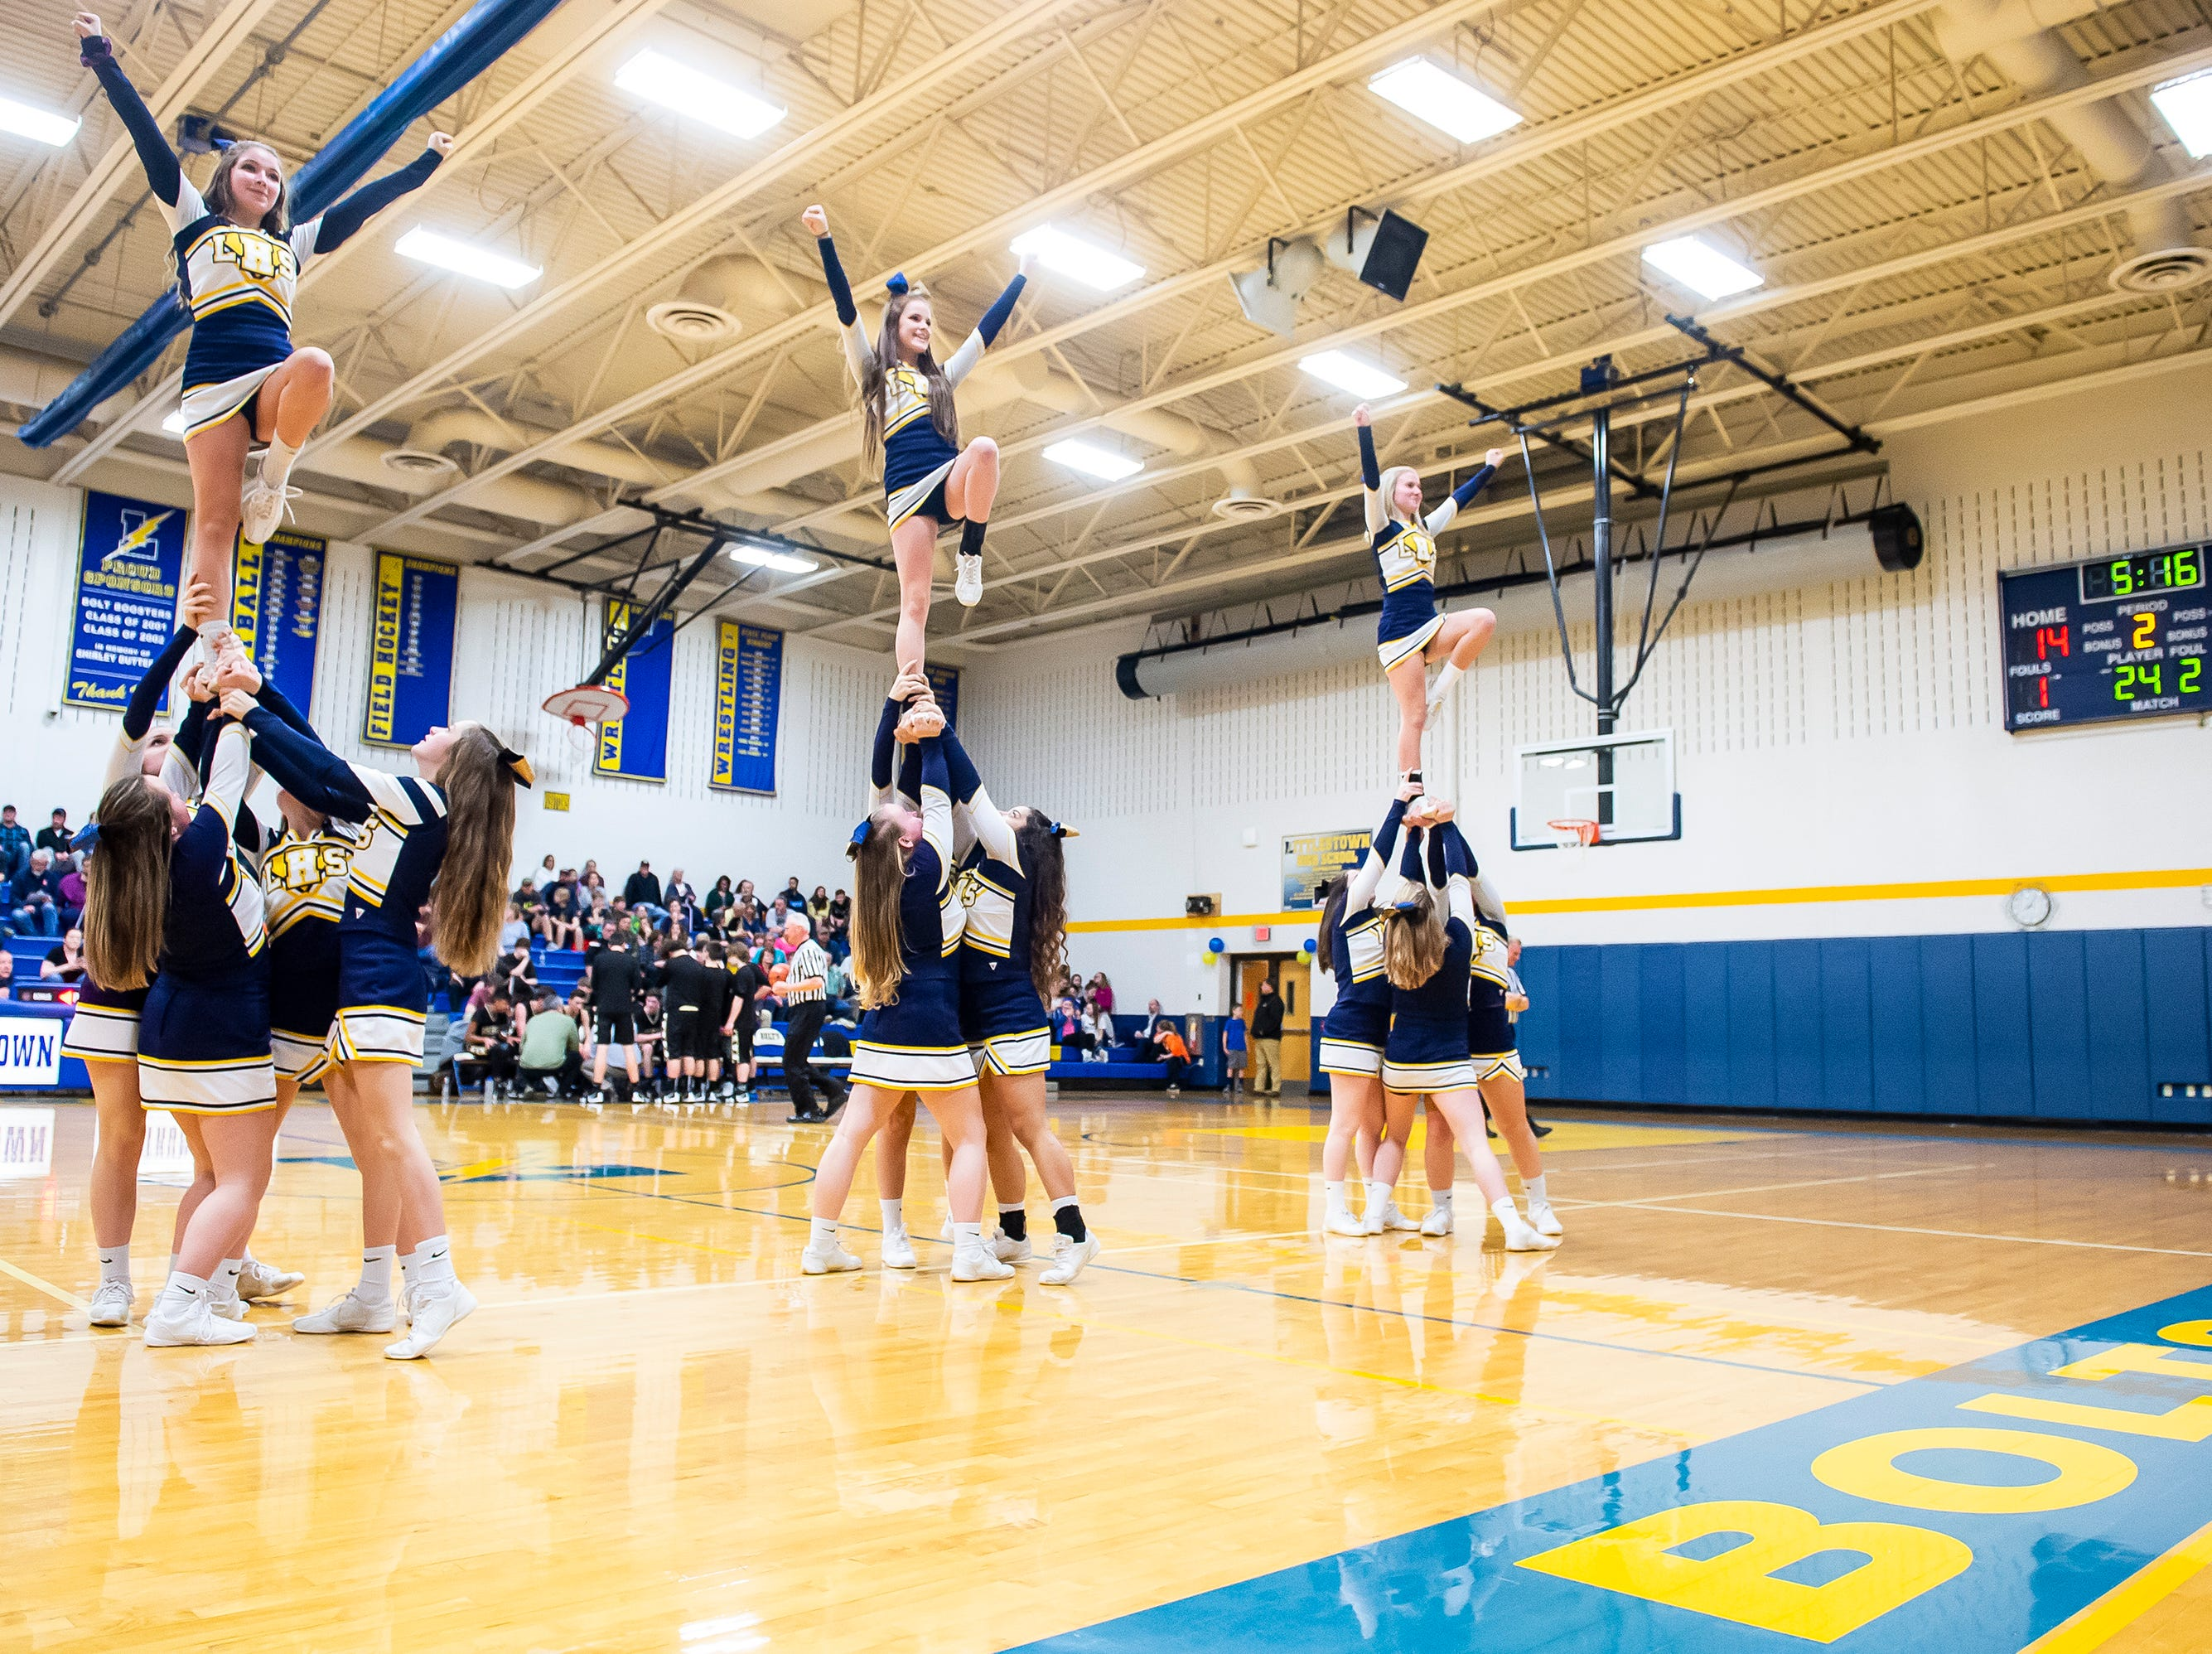 Littlestown cheerleaders perform a routine during a timeout between Biglerville and the Bolts Tuesday, February 5, 2019. The Bolts won 54-46 on senior night.